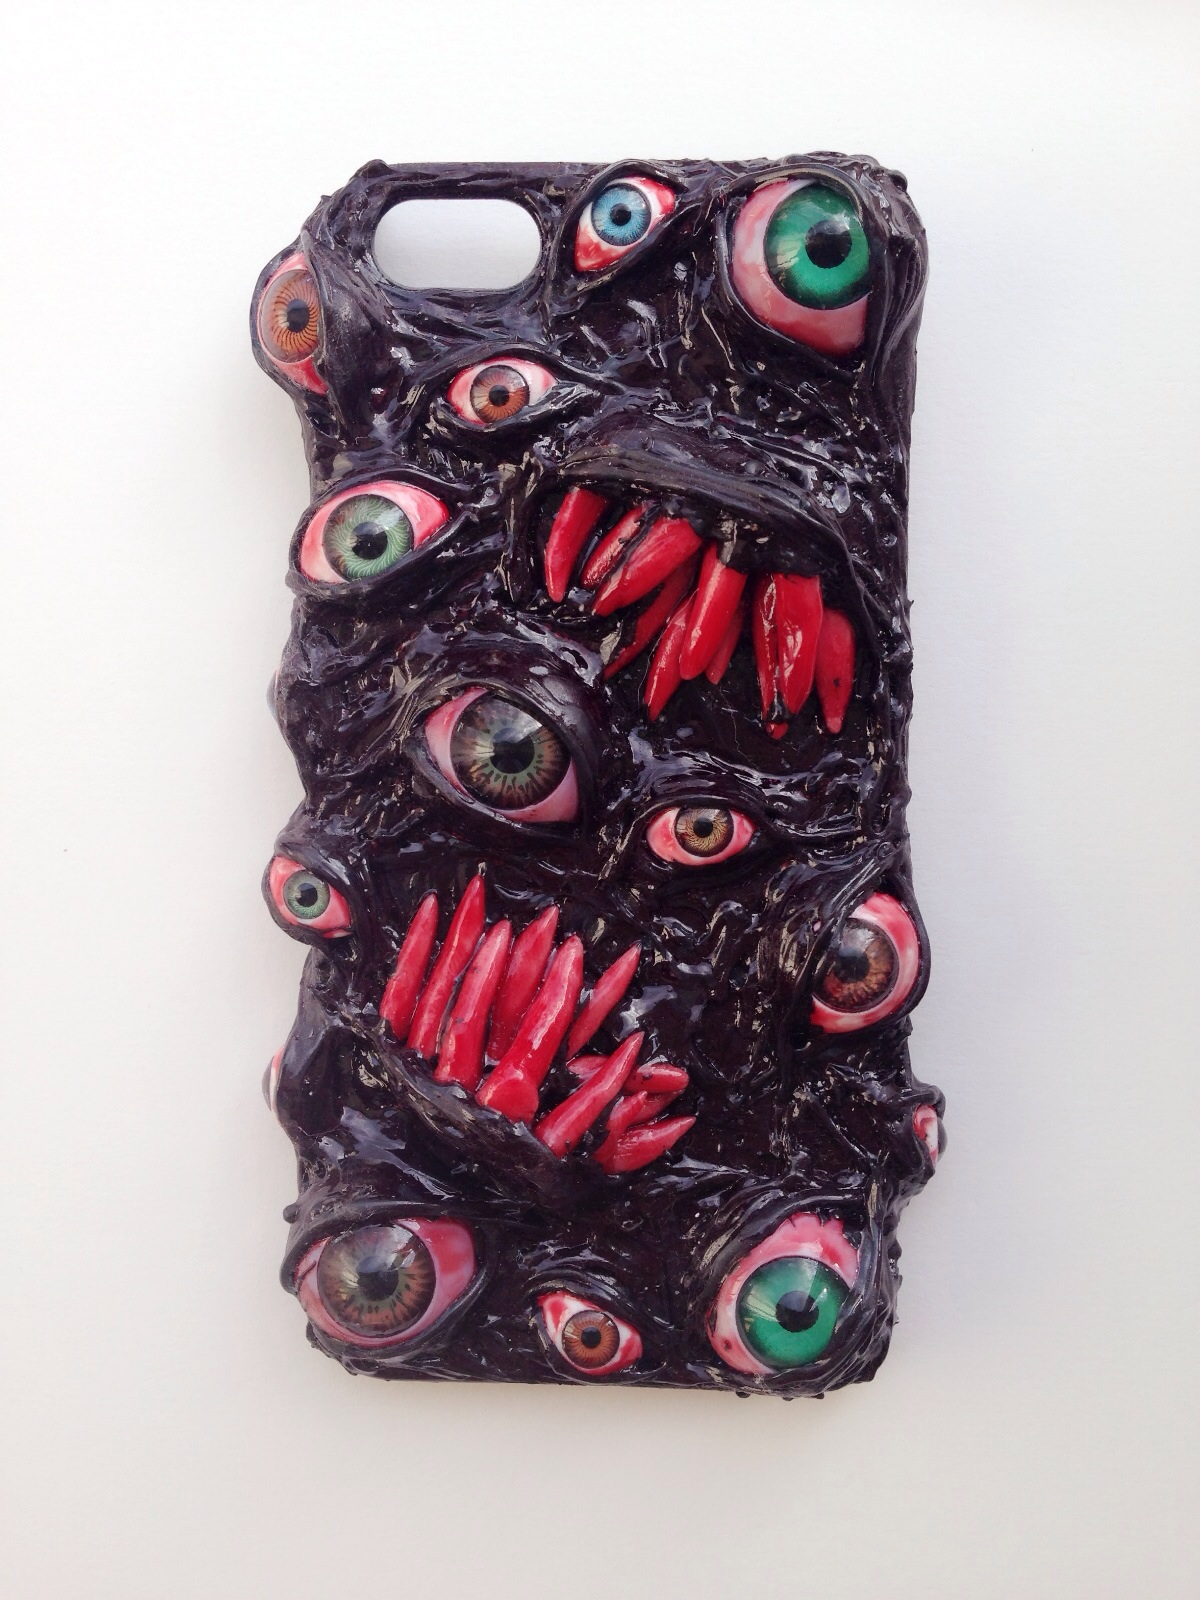 handmade decoden phone case surrealcustom horror phone